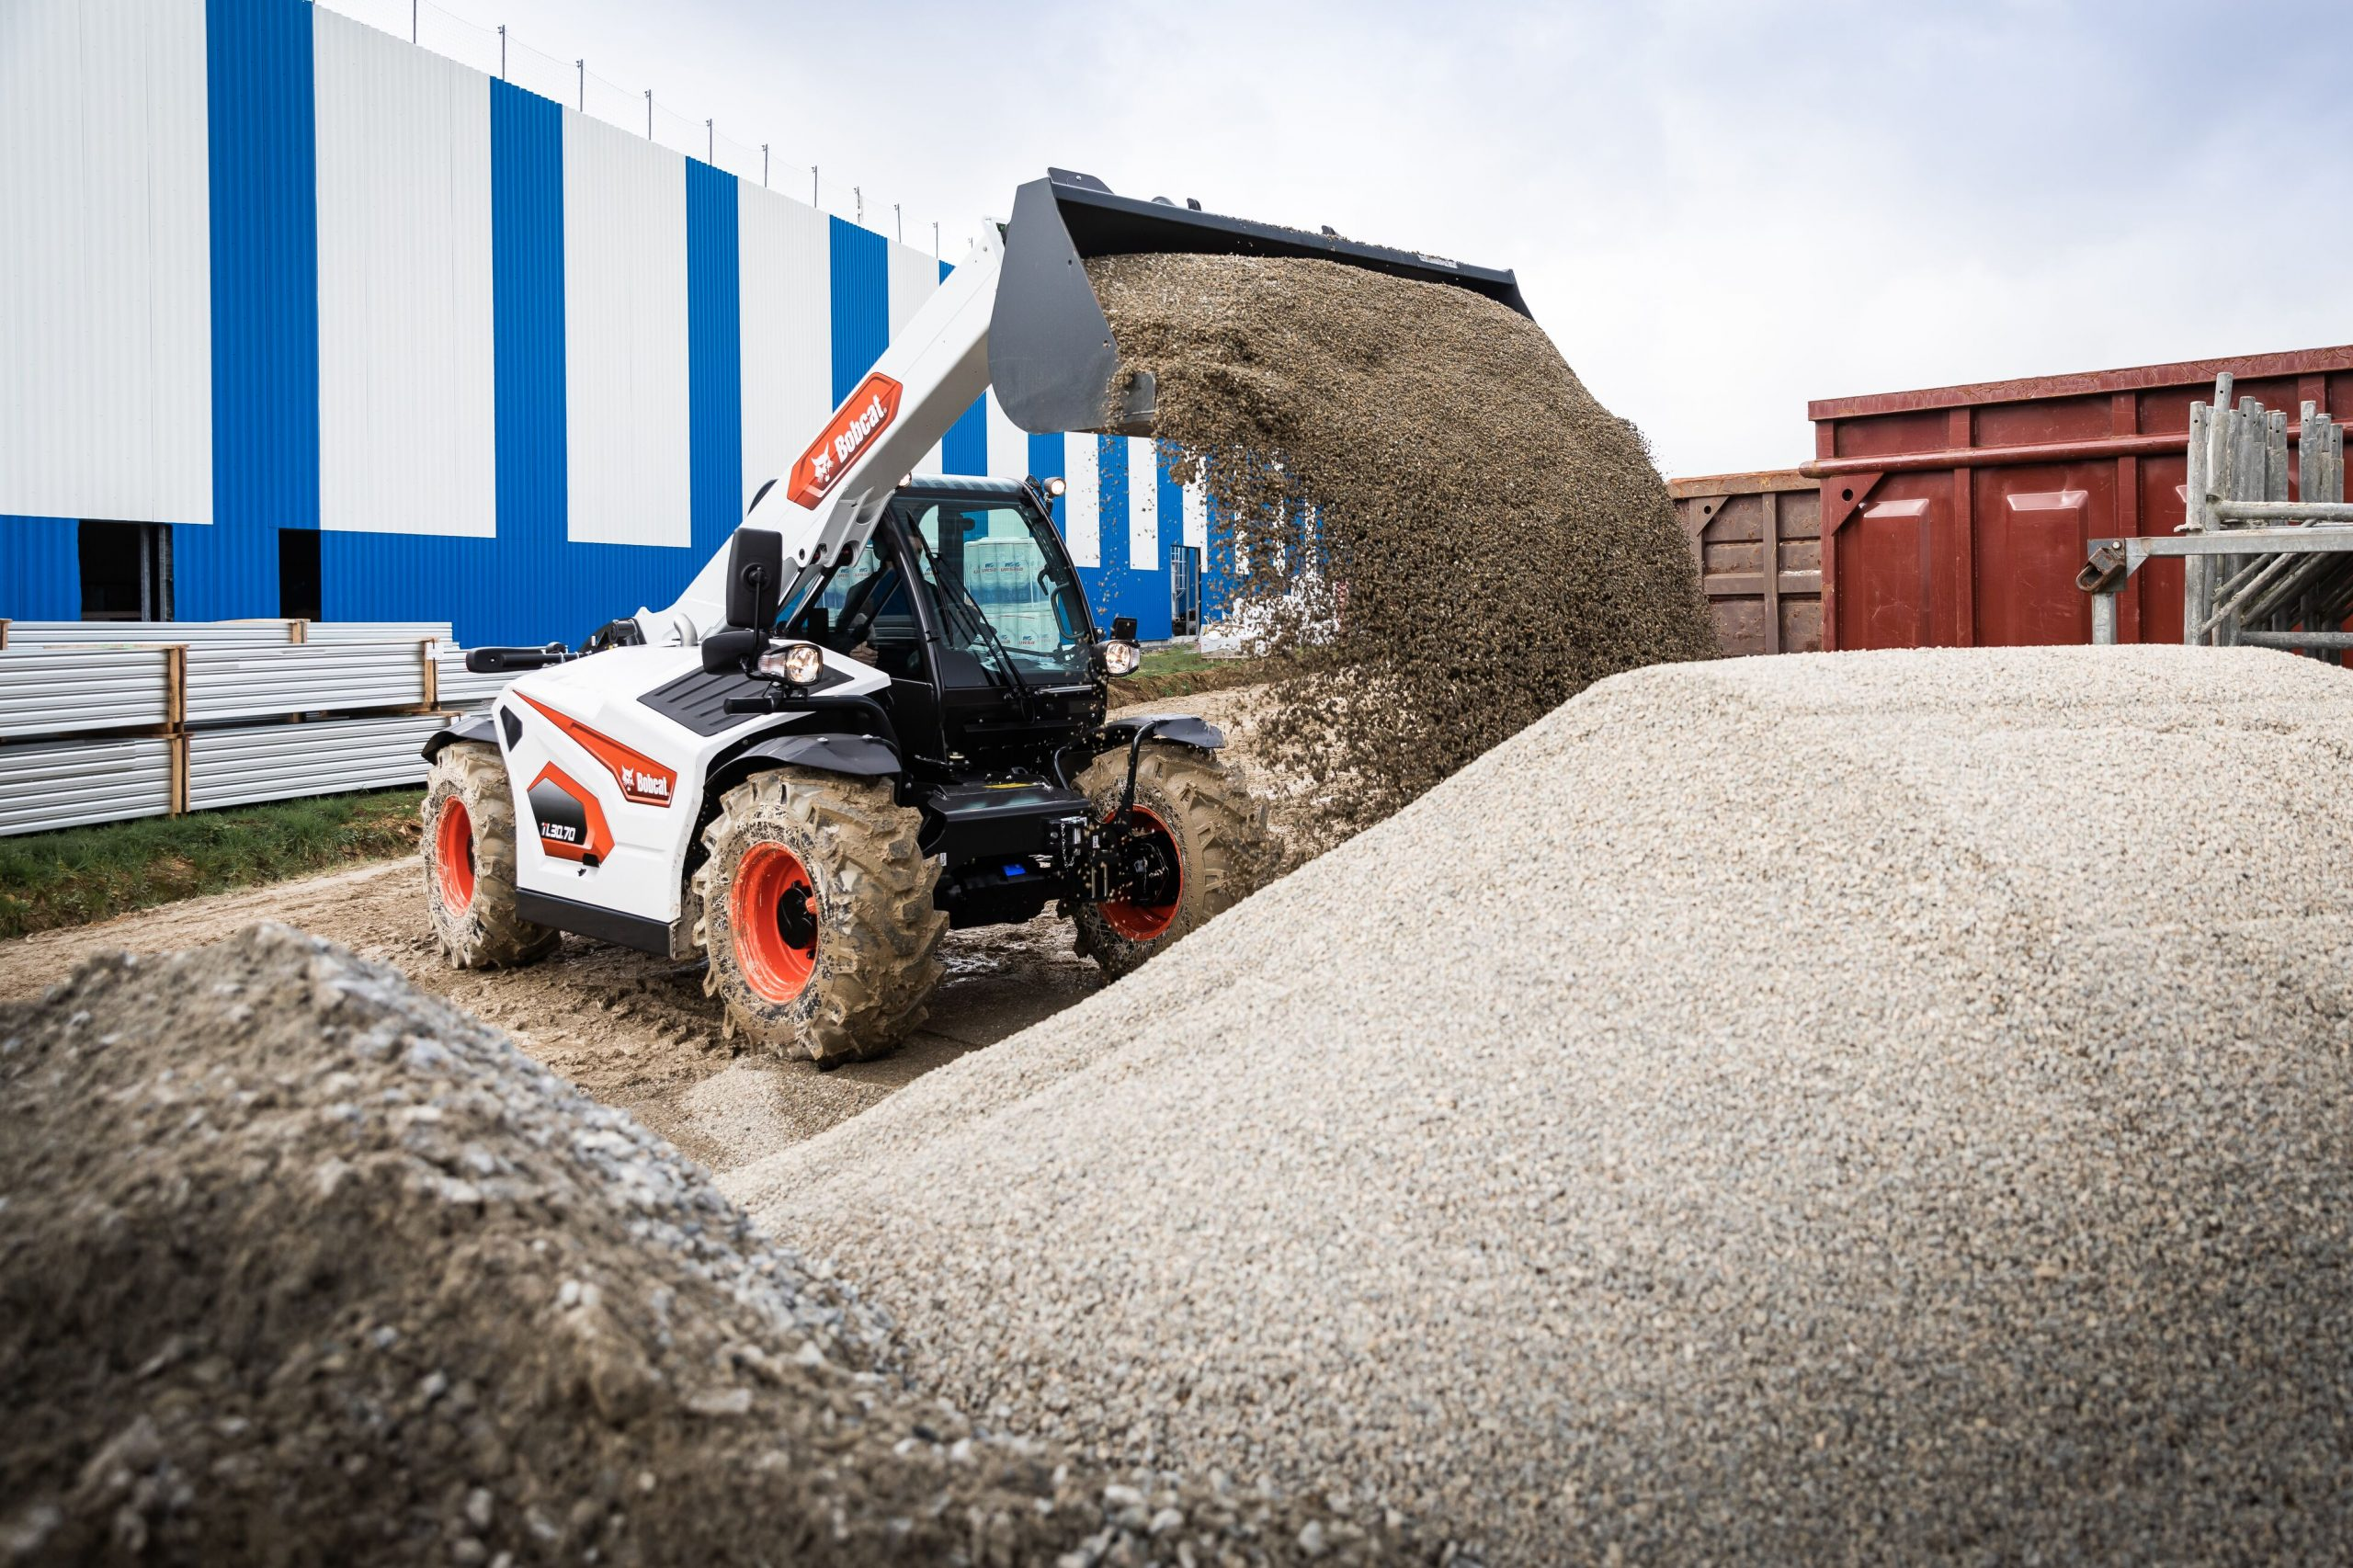 New Stage V Telehandlers and Track Loaders from Bobcat